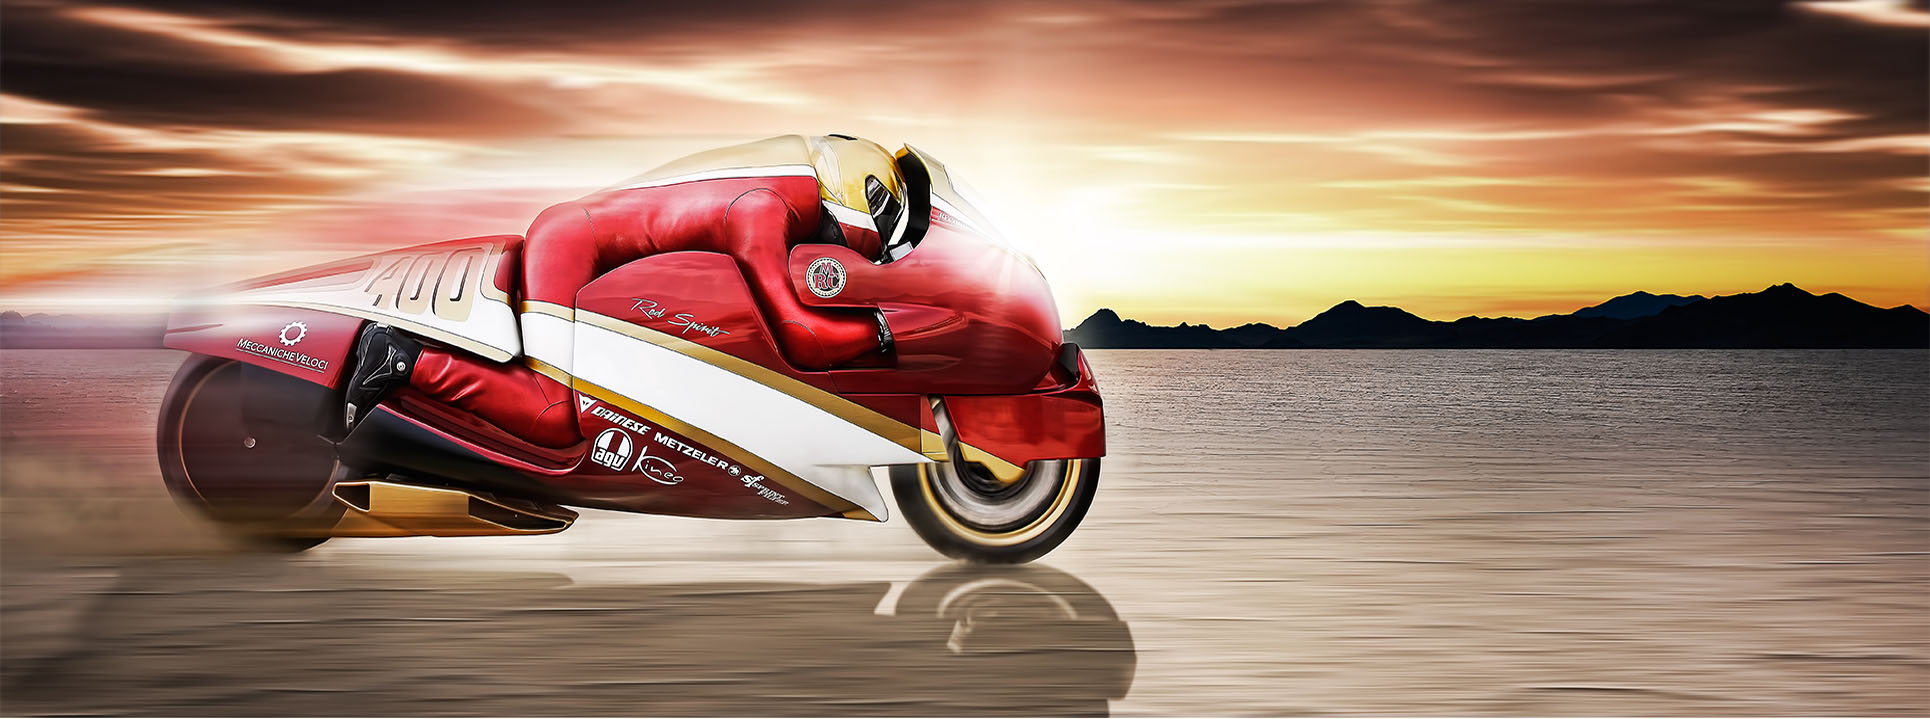 RMC_RECORD_MOTORCYCLES_SLIDE_1